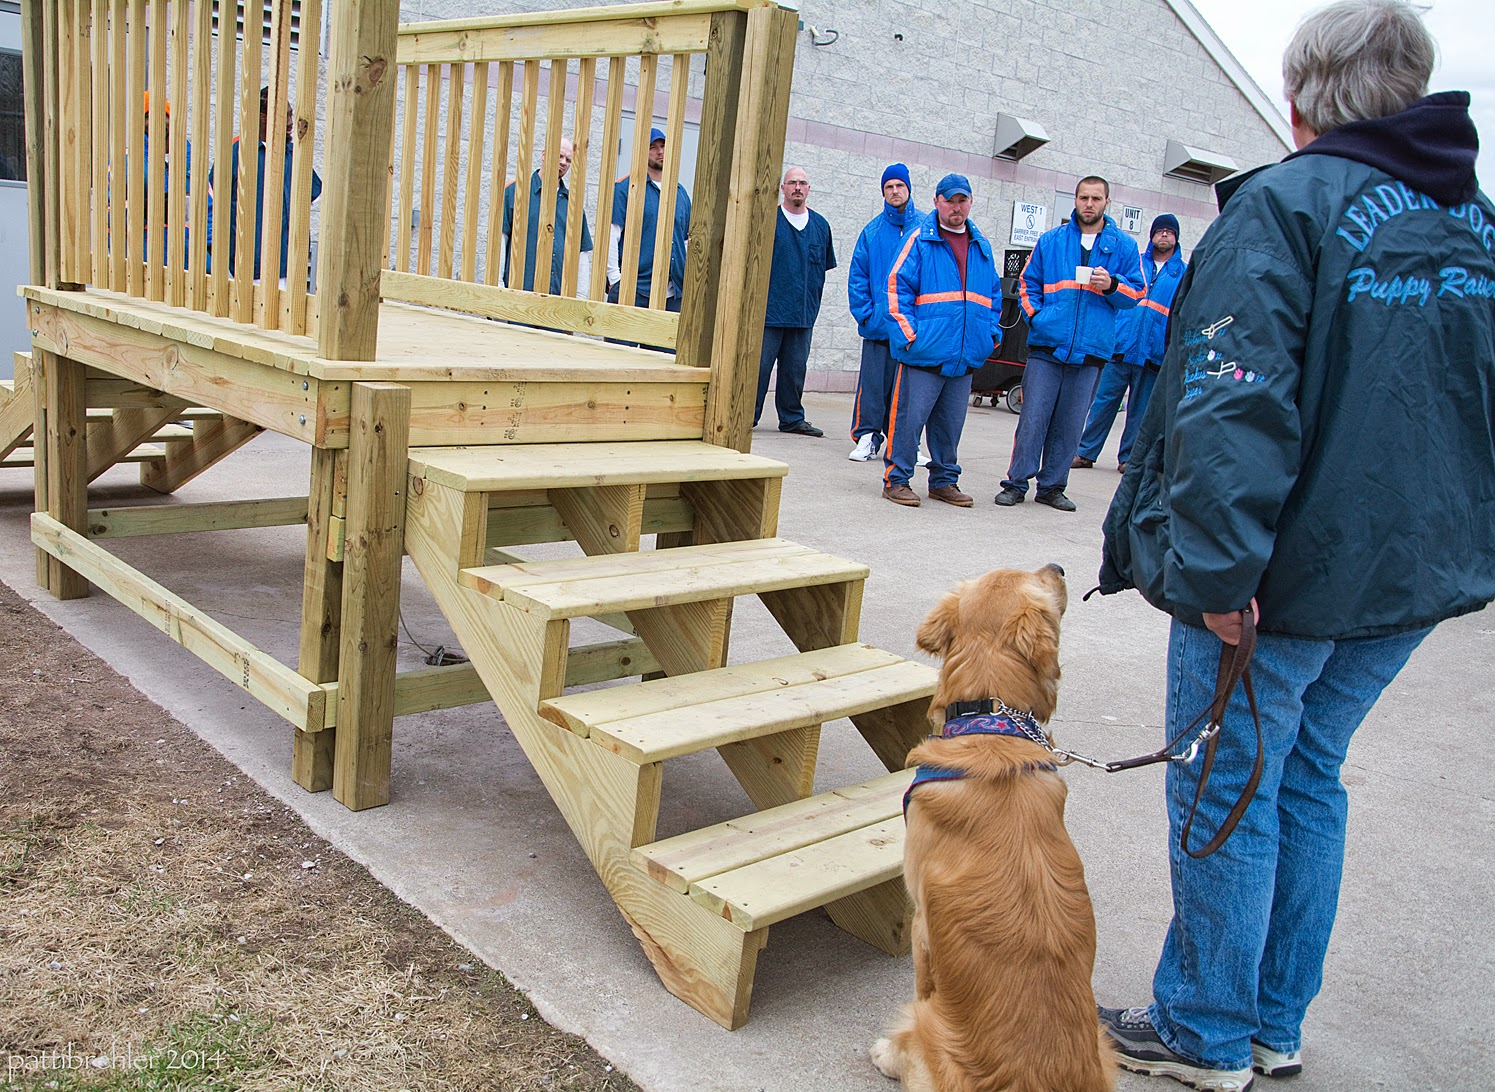 The same woman is more visible on the right side of the picture. Now her left hand is at her side holding the leash loose, and the golden retriever is sitting at her left side, looking up at her. There are more people in the background. On the left is the wooden stairs up to a platform and down the other side.